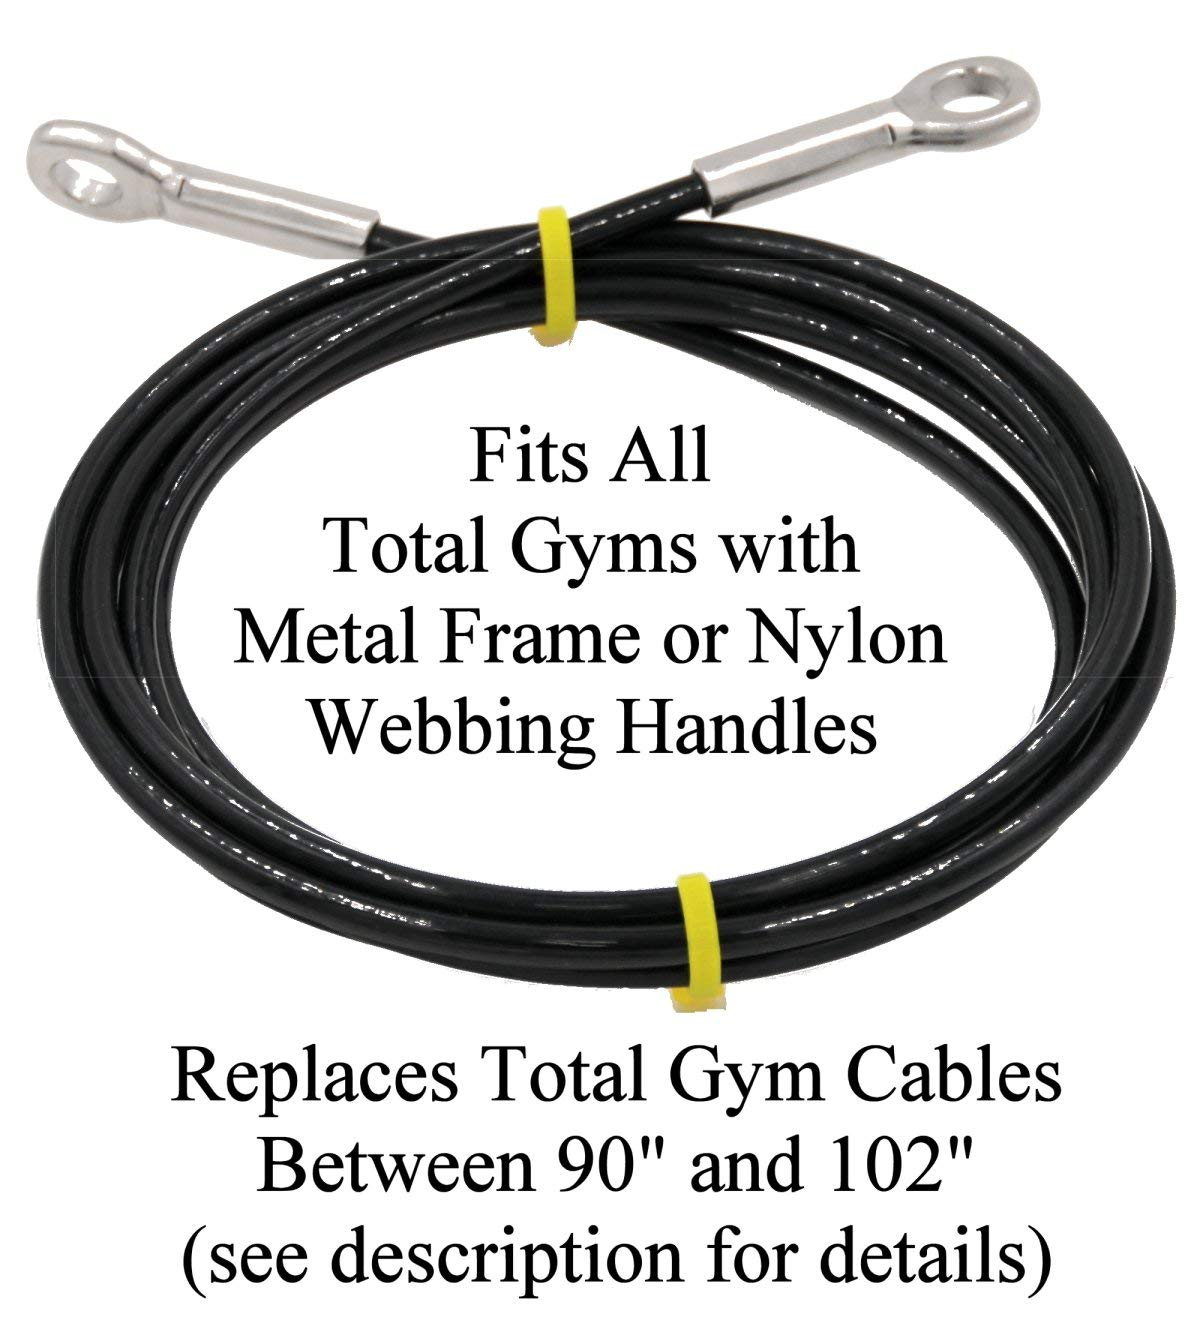 Made in USA Extremely Long Life Cable 5-10 Times Longer Than Other Cables Fits All Total Gyms with Metal Frame or Nylon Webb Handles. Read Product Description About Length